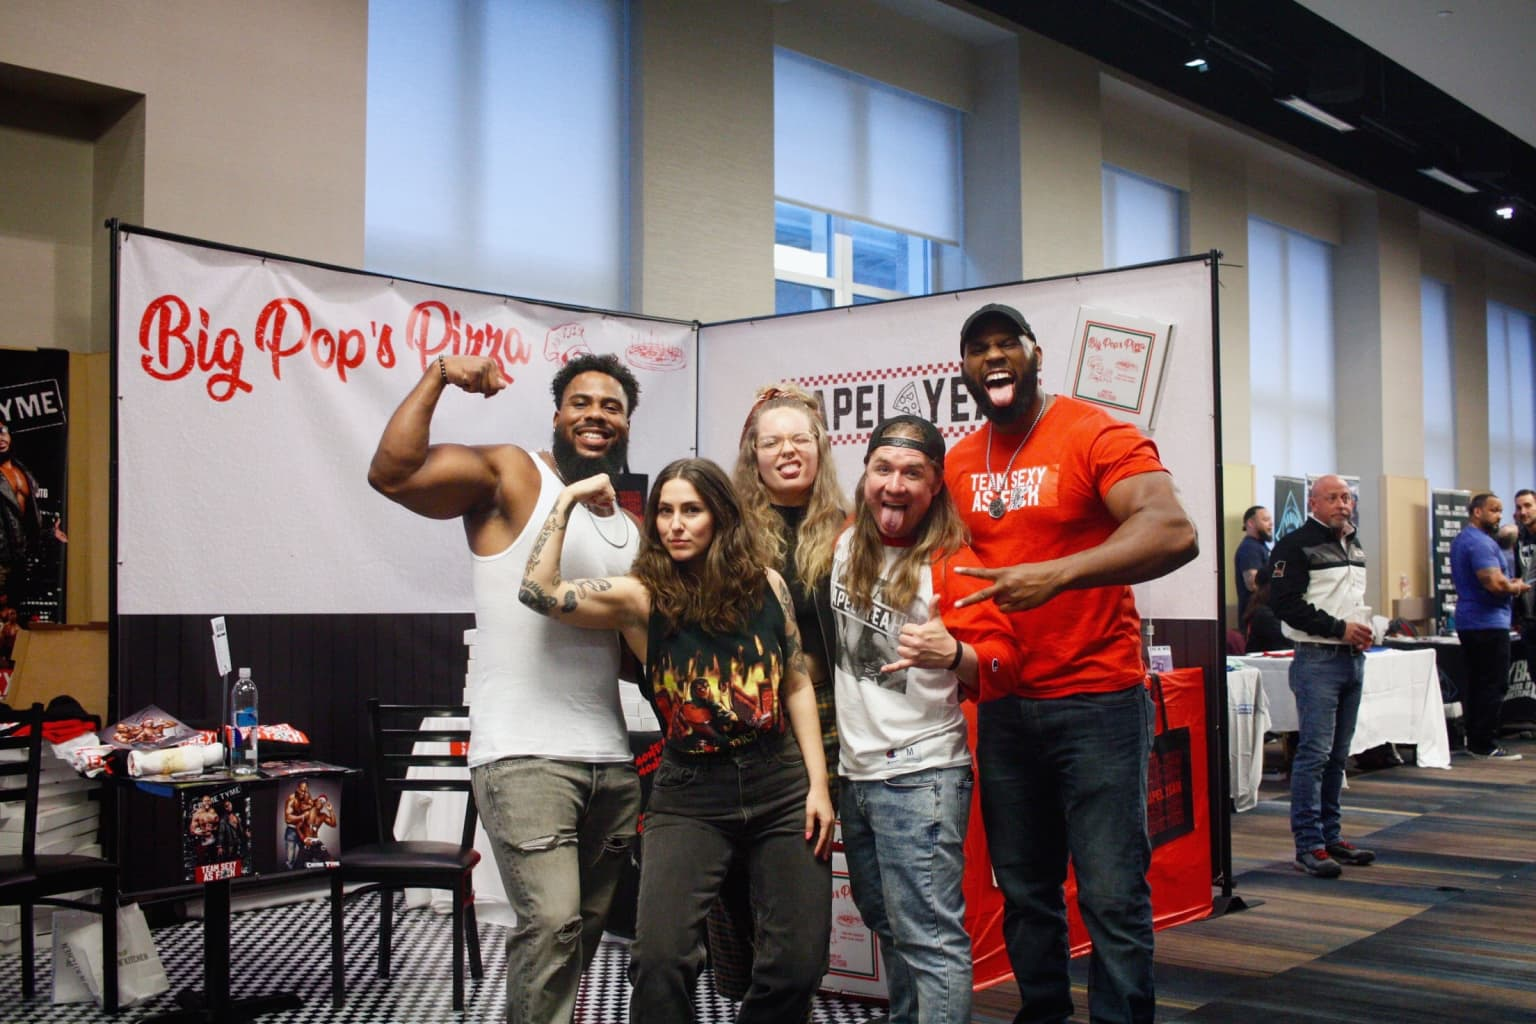 "Lapel Yeah ""Big Pop's Pizza"" Wrestlecon Merch Booth, Wrestlemania NYC 2019"